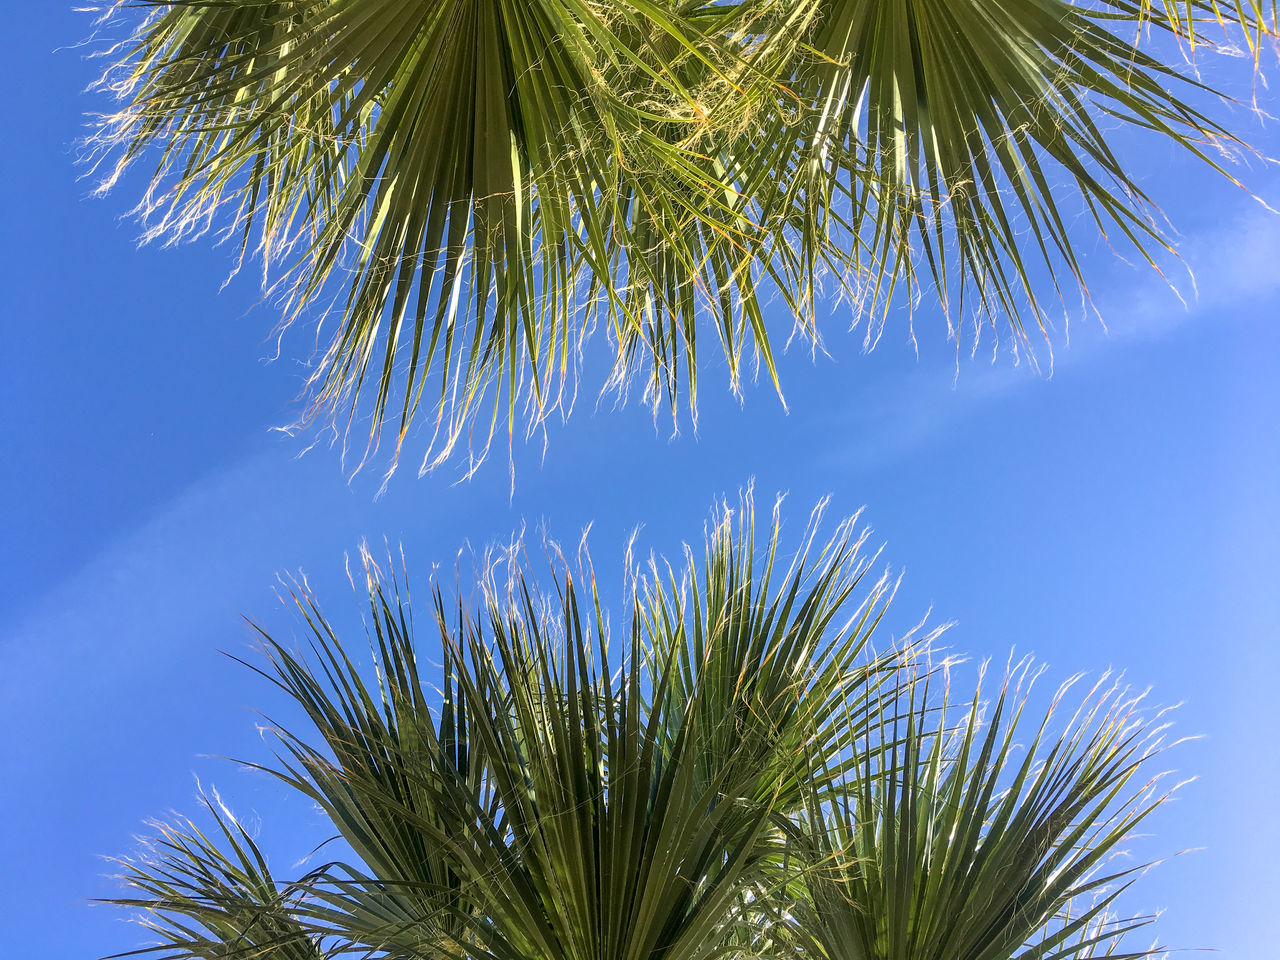 palm tree, growth, tree, sky, nature, blue, no people, branch, outdoors, day, beauty in nature, close-up